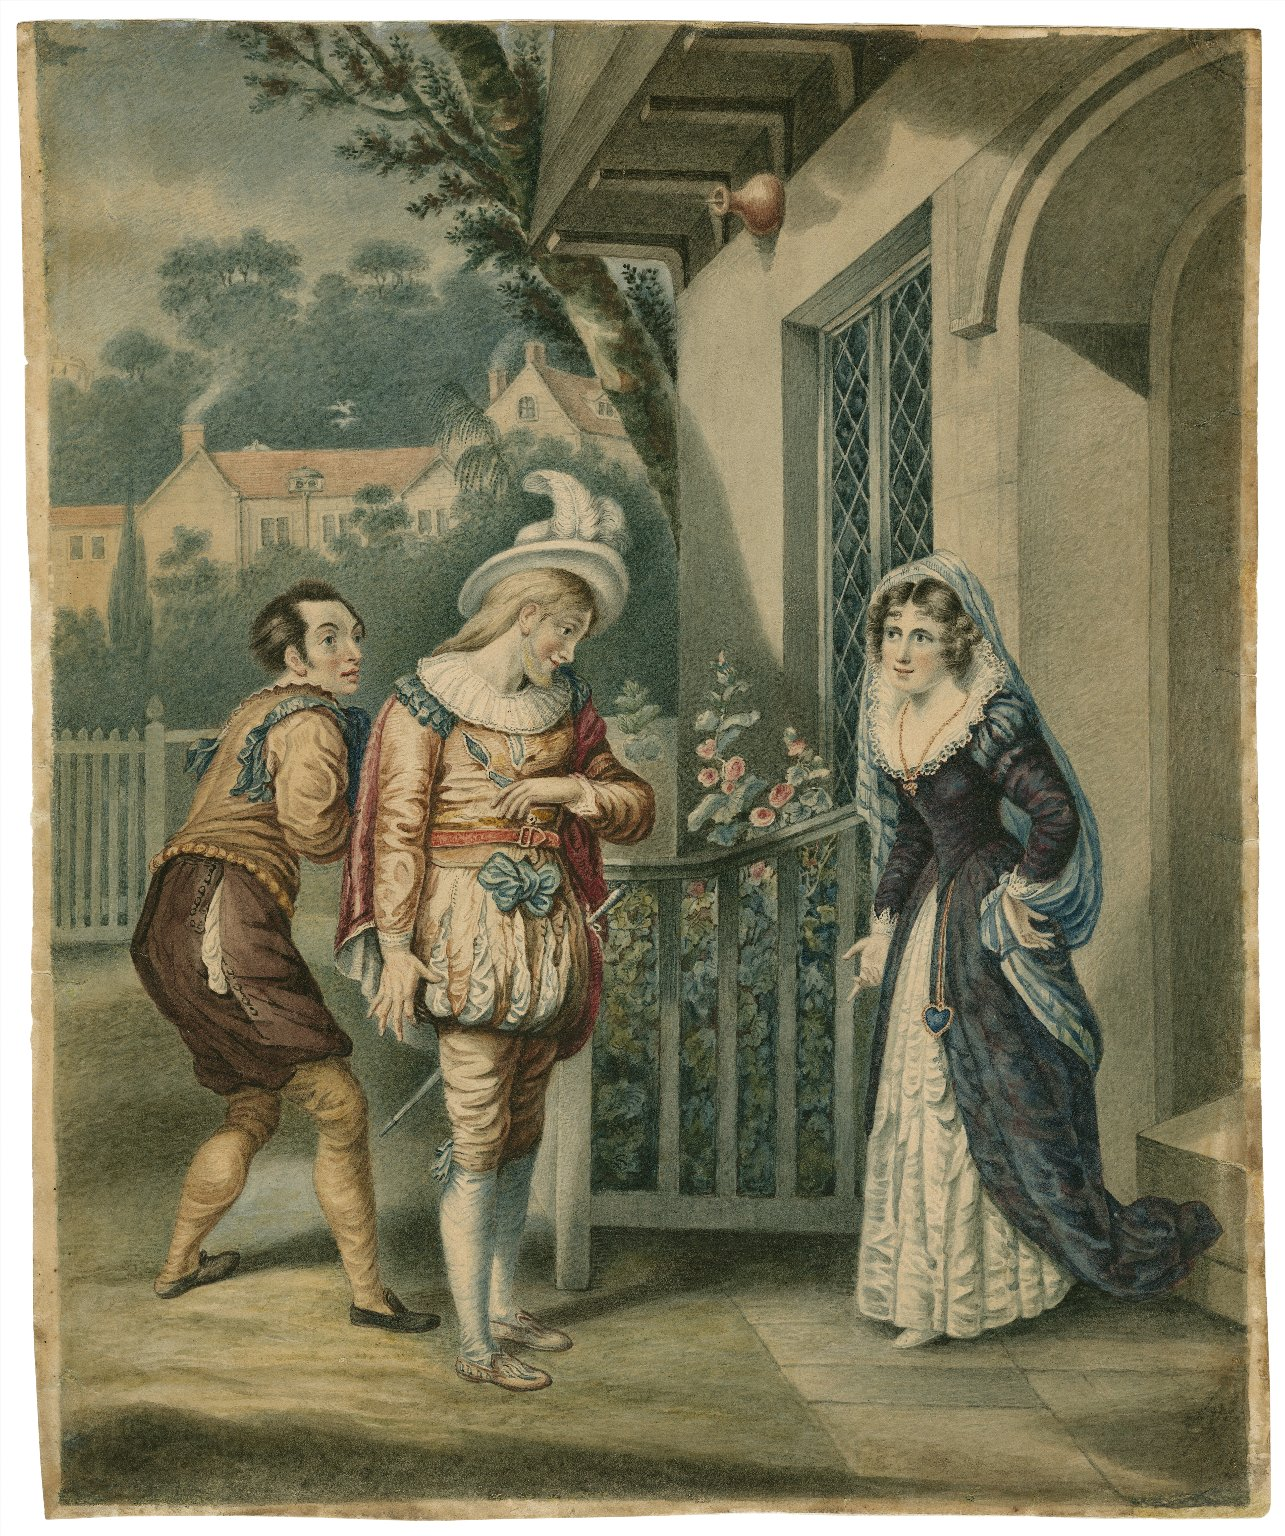 Merry wives of Windsor, III, 4, Anne Page and Slender [graphic].